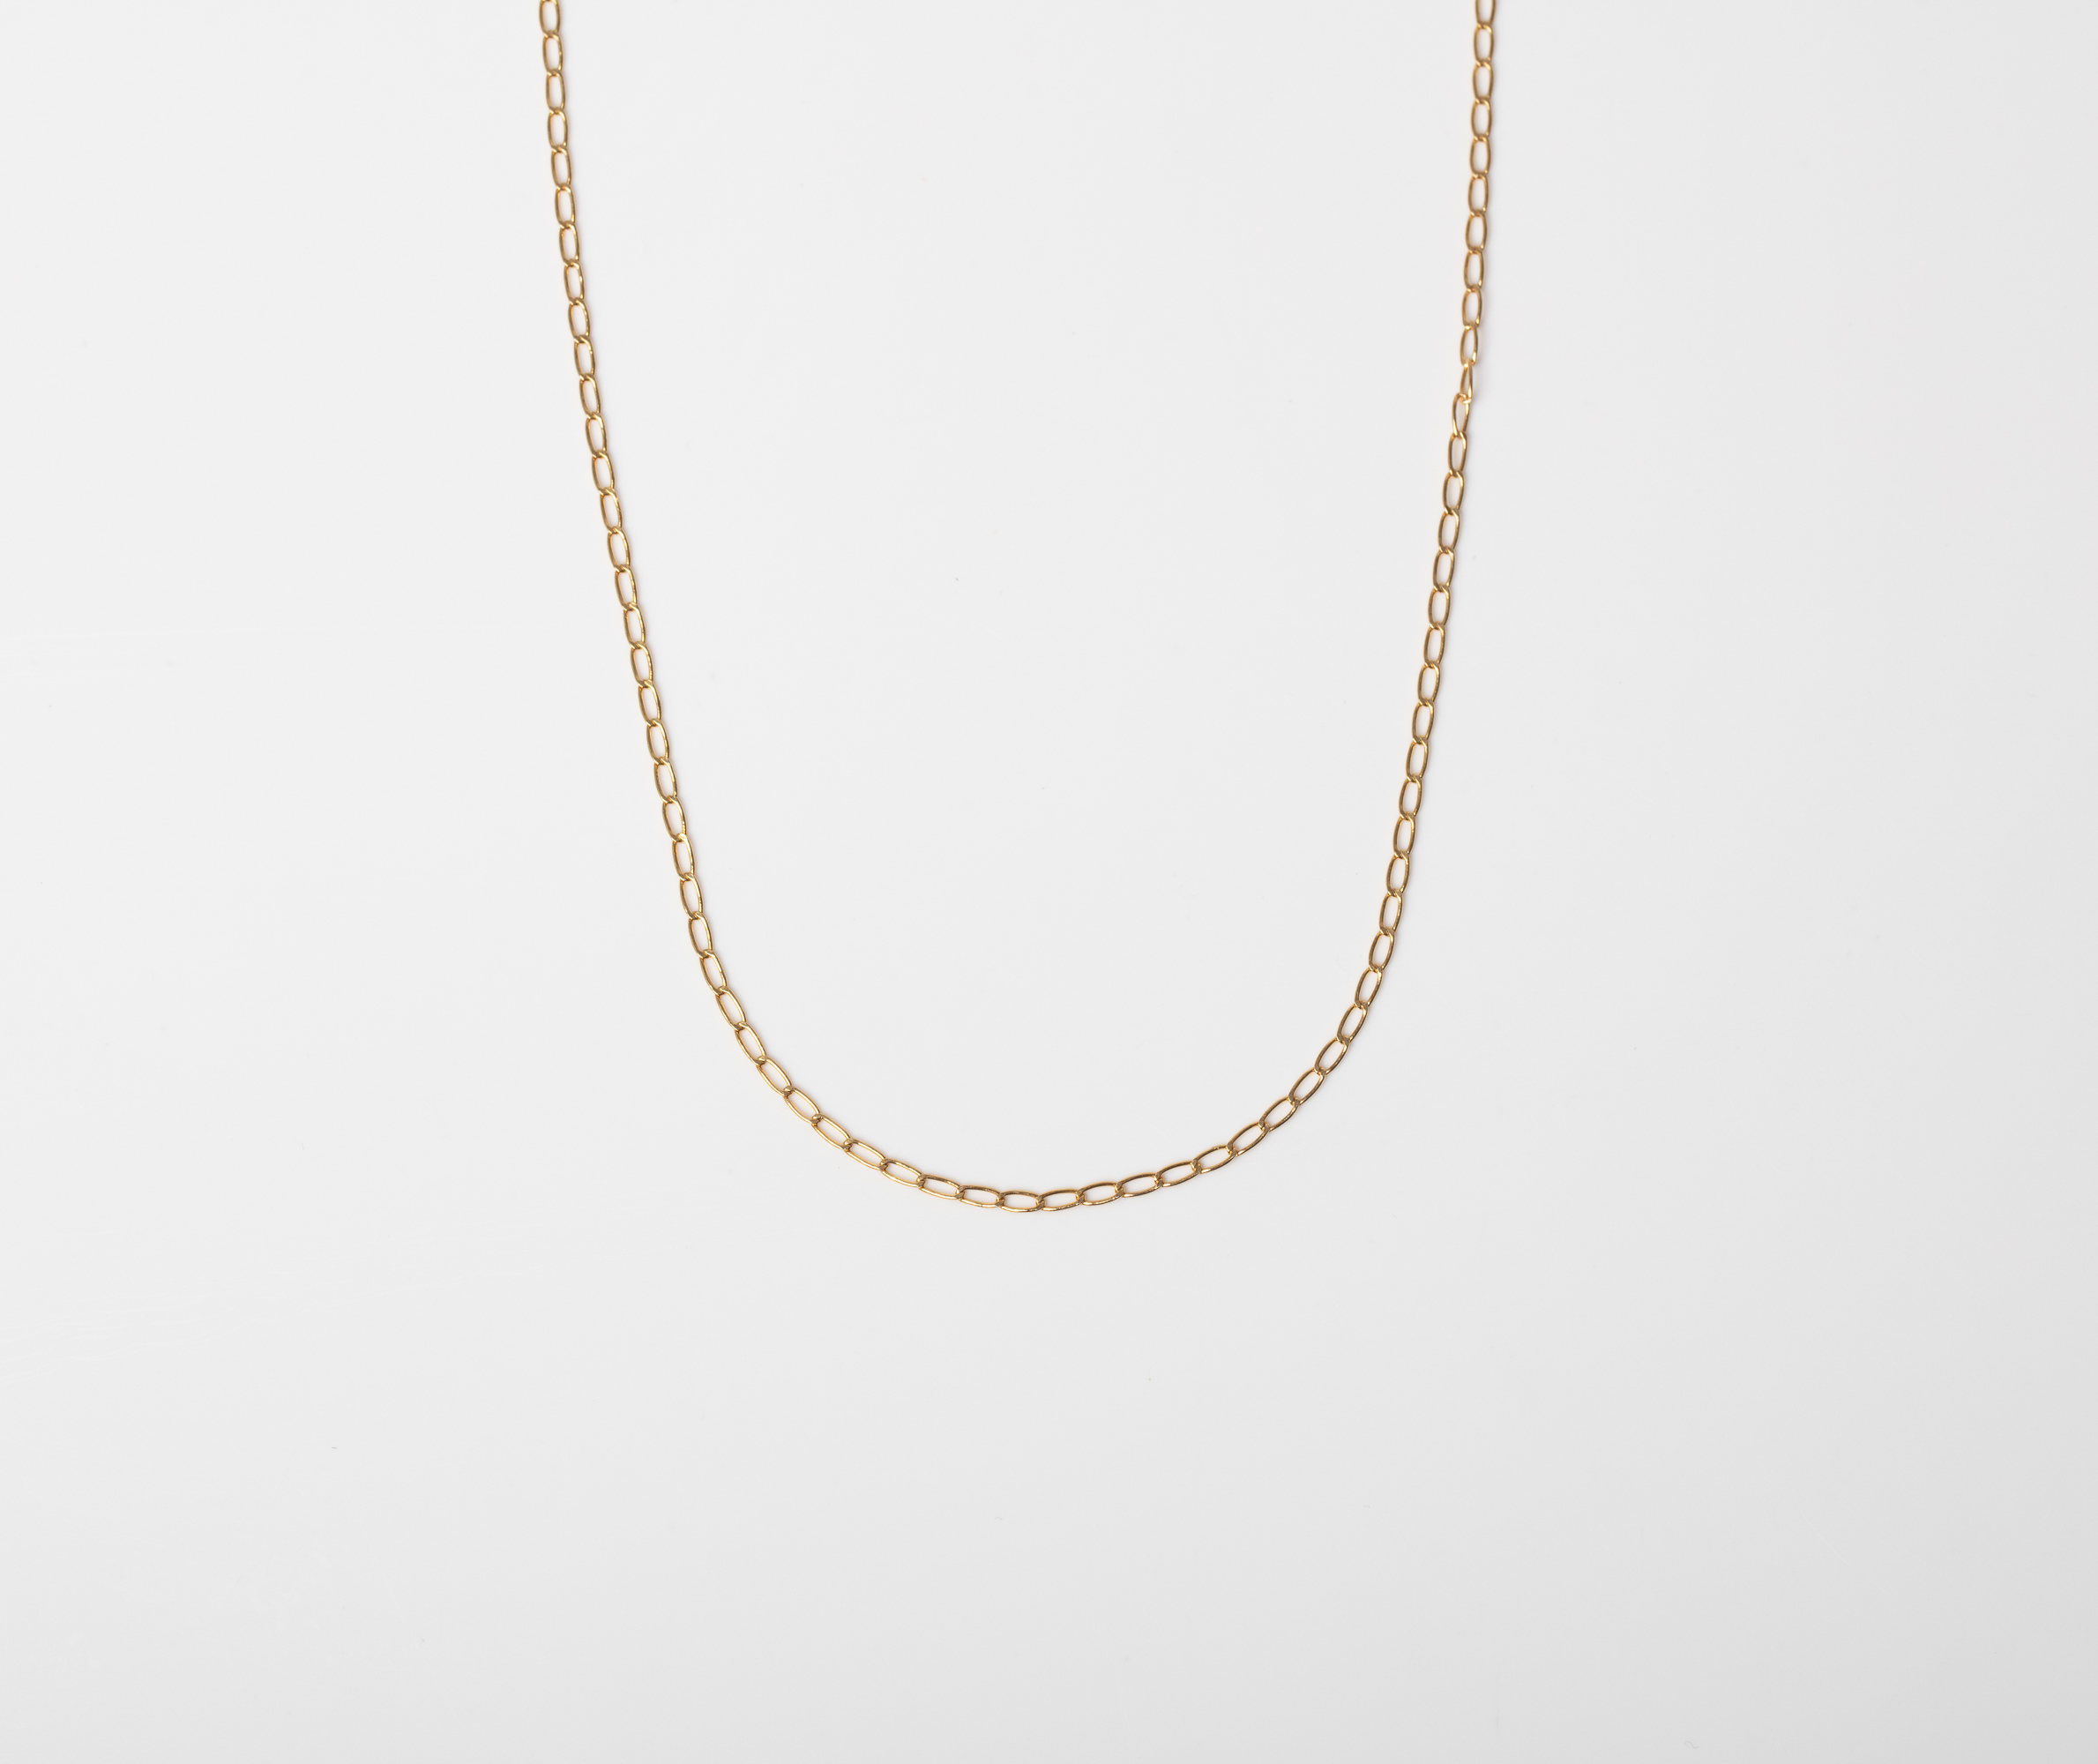 A 9CT GOLD AND SILVER BONDED LONG LINK CURB CHAIN